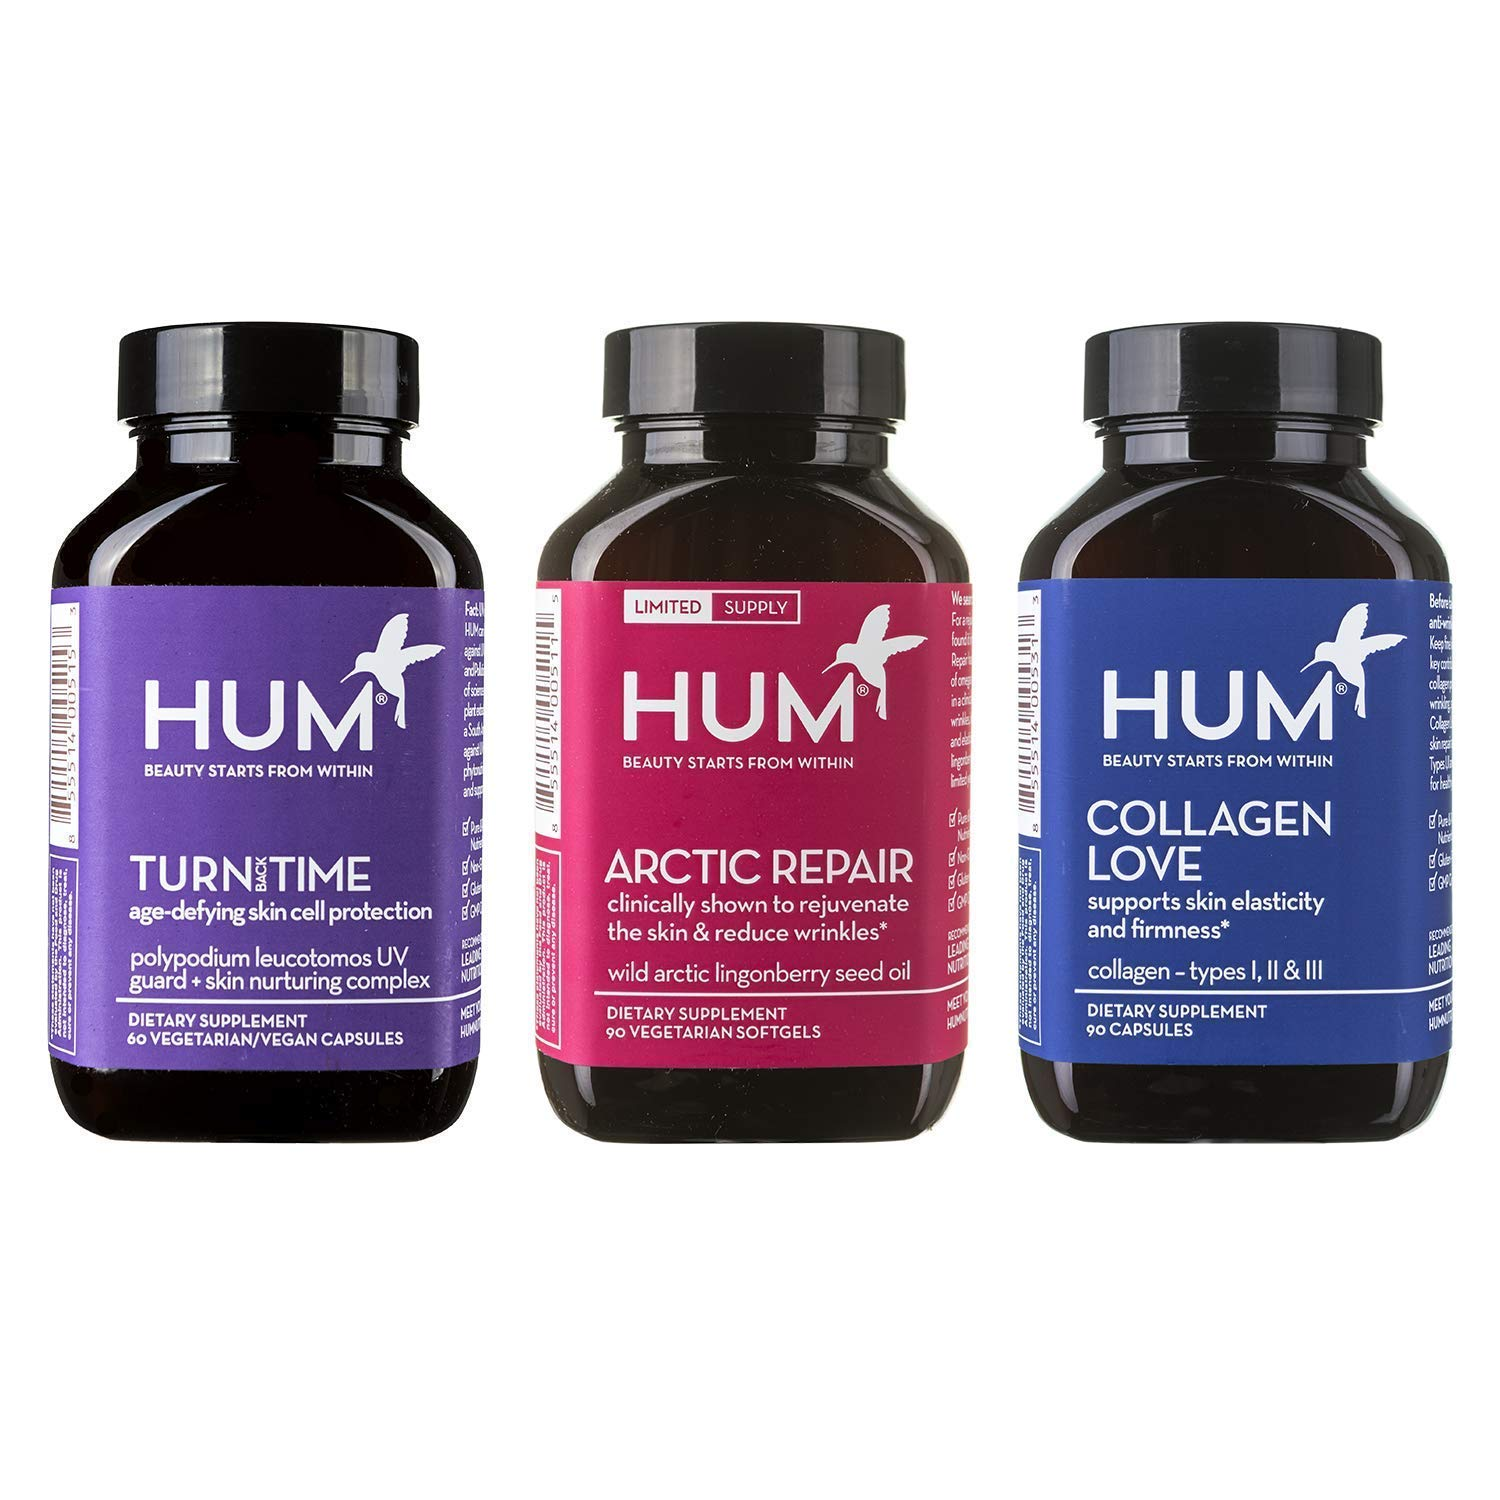 HUM Anti-Aging Supplement Set with Arctic Repair (90 Vegan Softgels), Collagen Love - Type I & III Collagen Peptides (90 Capsules) & Turn Back Time for Youthful Skin (60 Vegan Capsules)